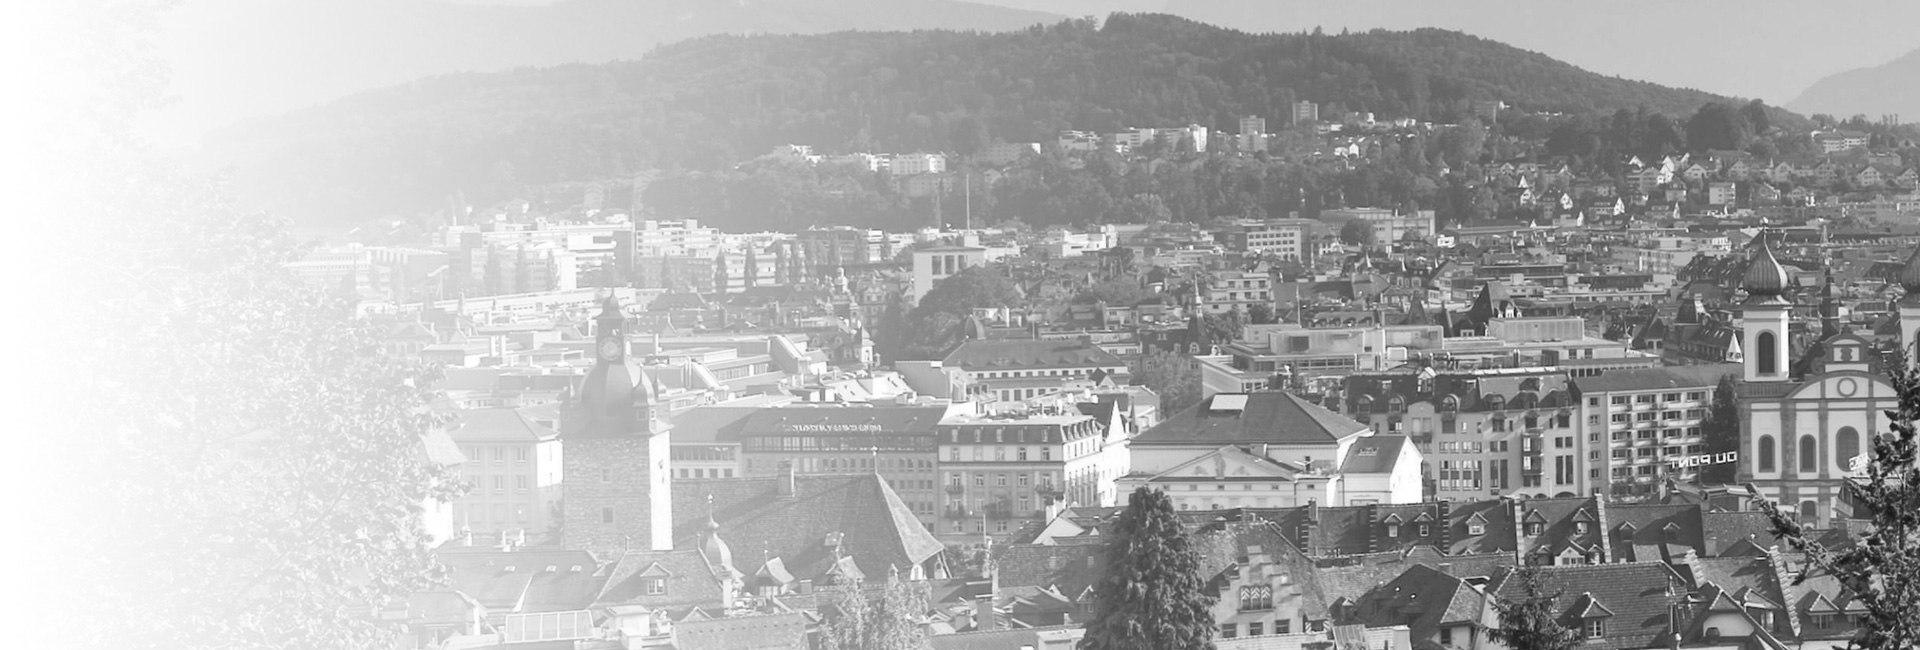 Grenchen, the place of origin